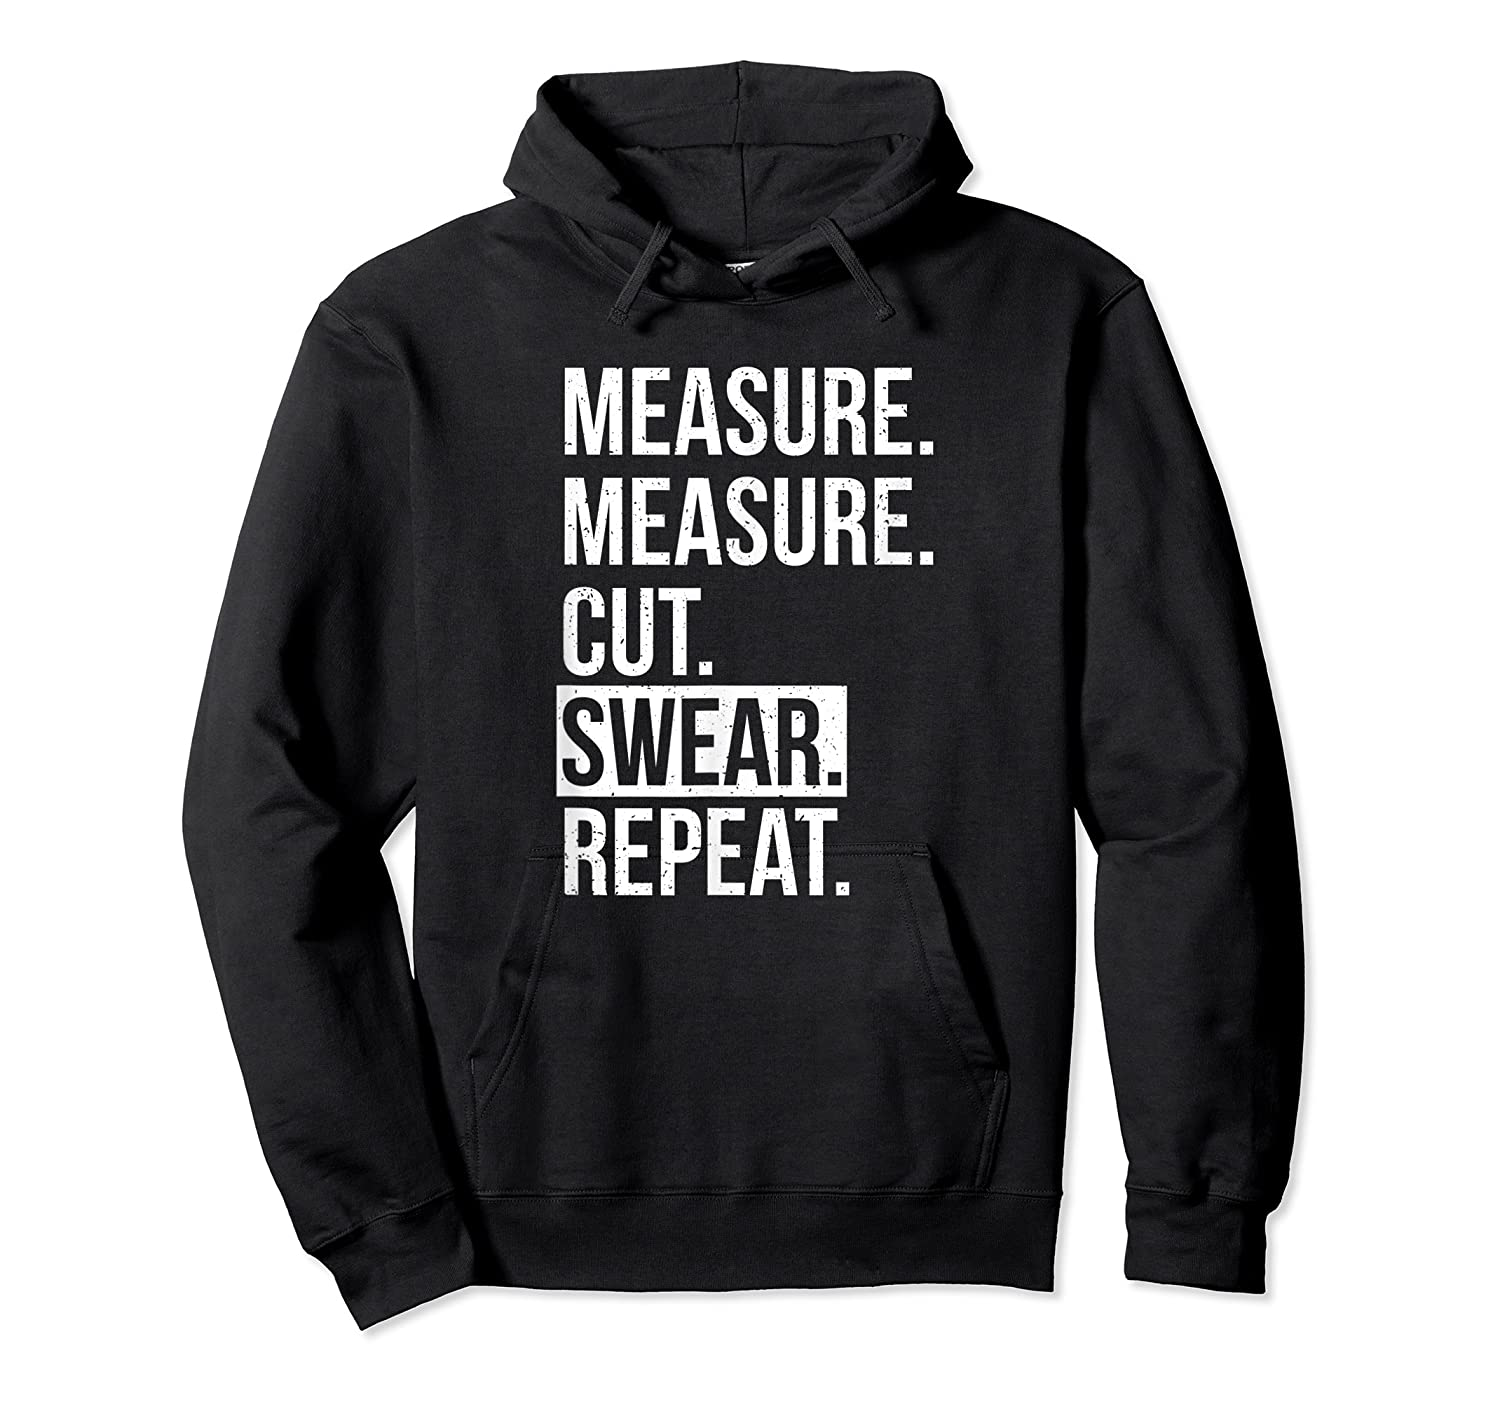 Funny Measure Cut Swear Dad Gift For Shirts Unisex Pullover Hoodie